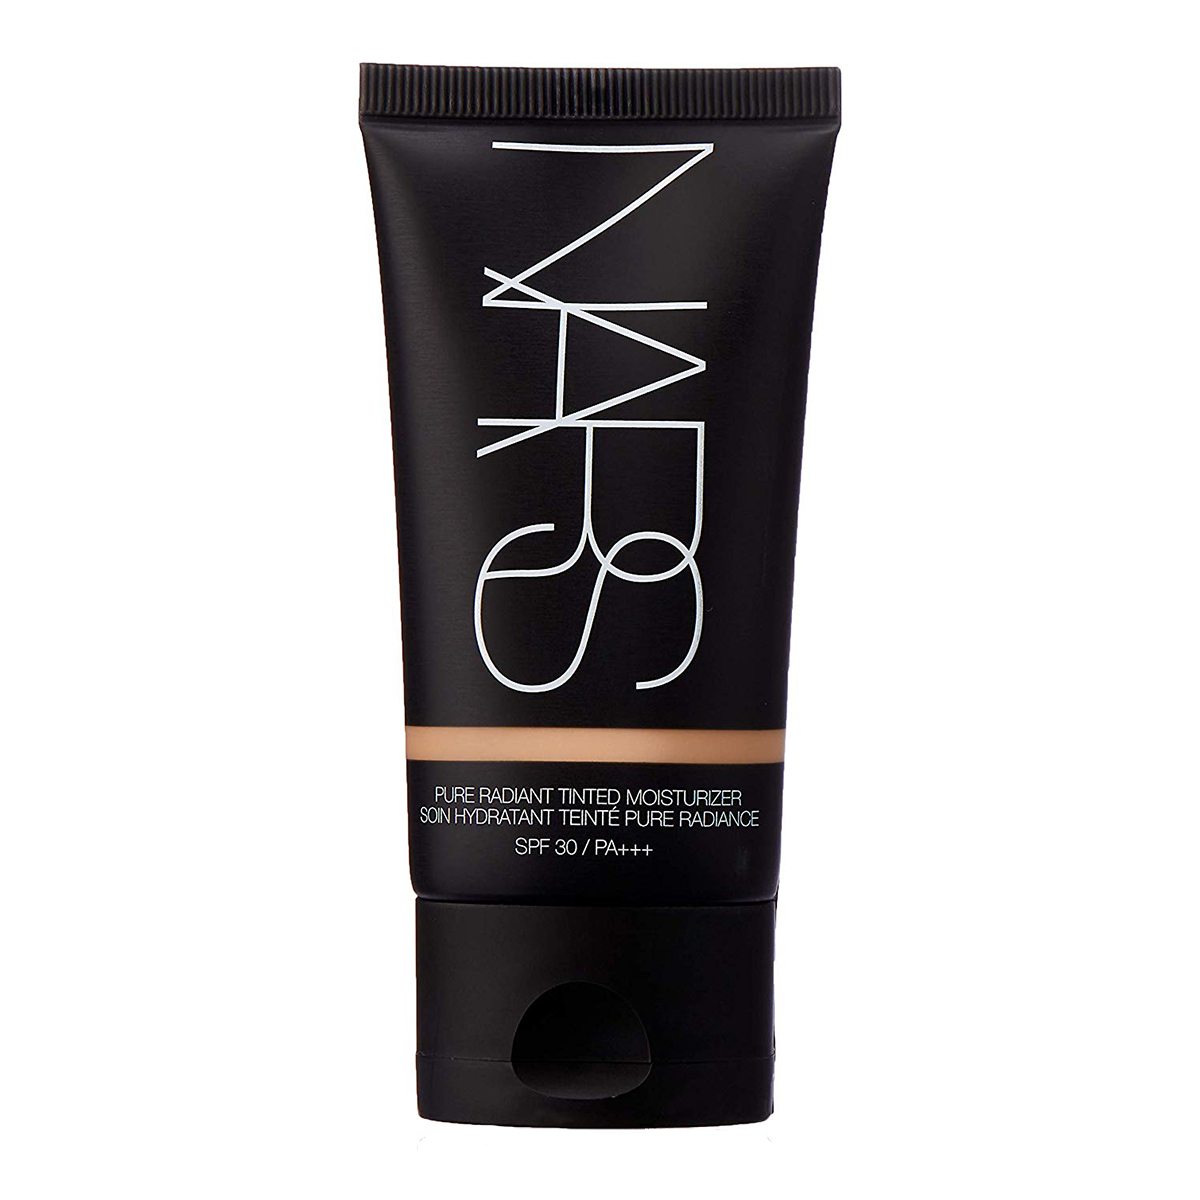 Nars Pure Radiant Tinted Moisturizer SPF 30